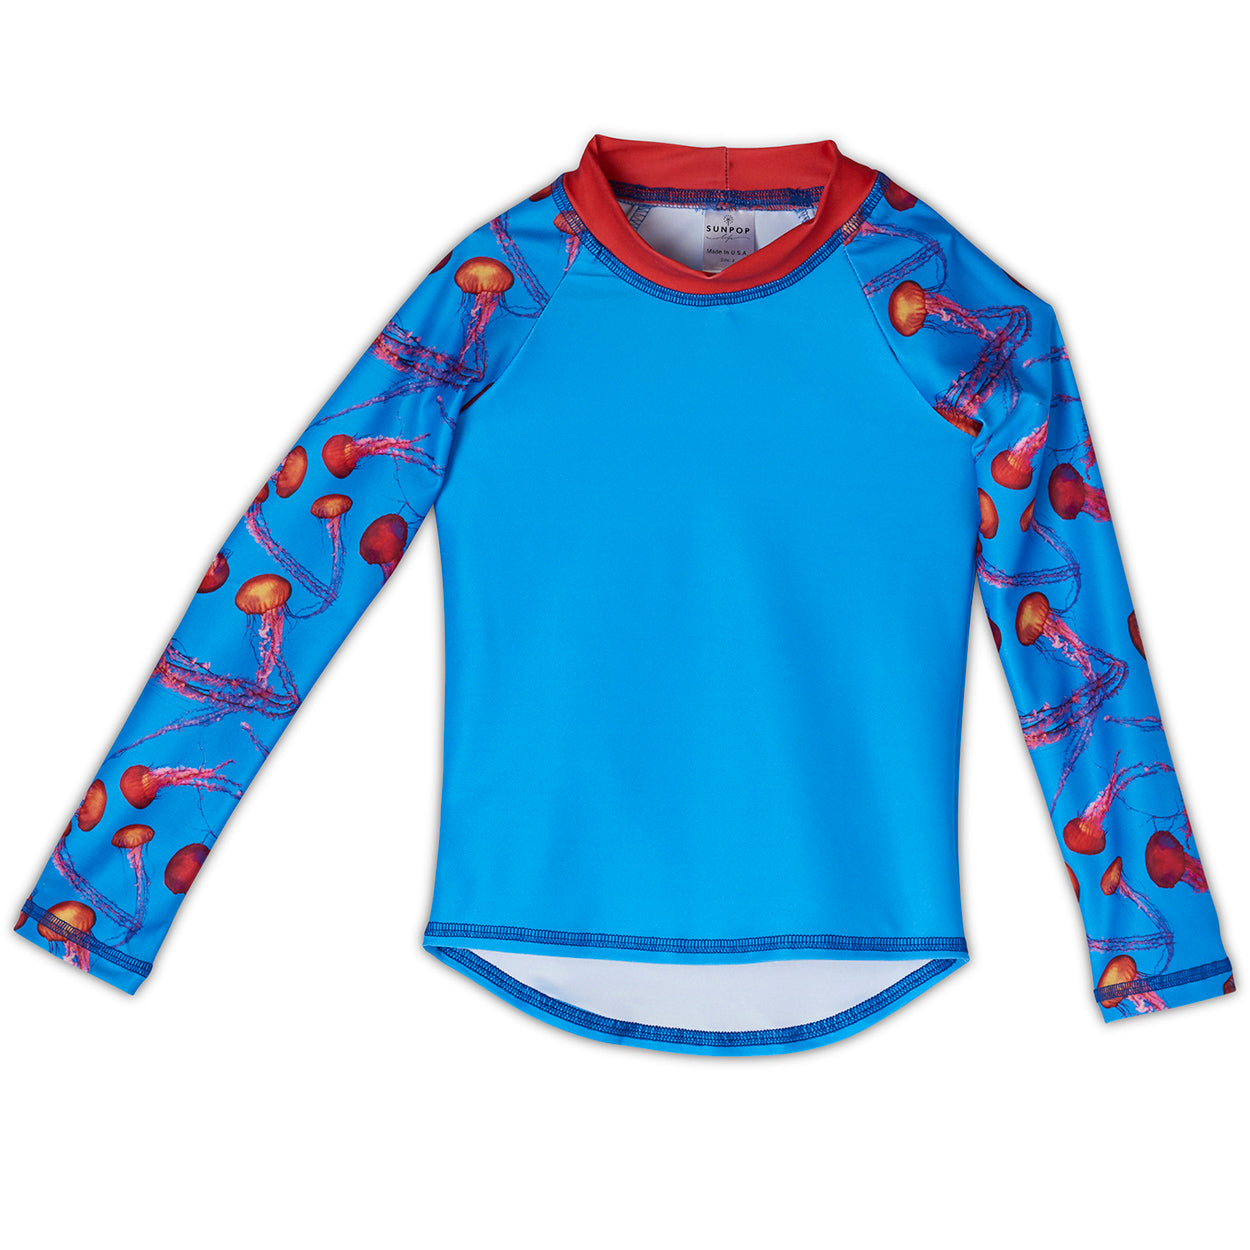 Red Jellyfish Rash Guard Top Kids Sunpoplife